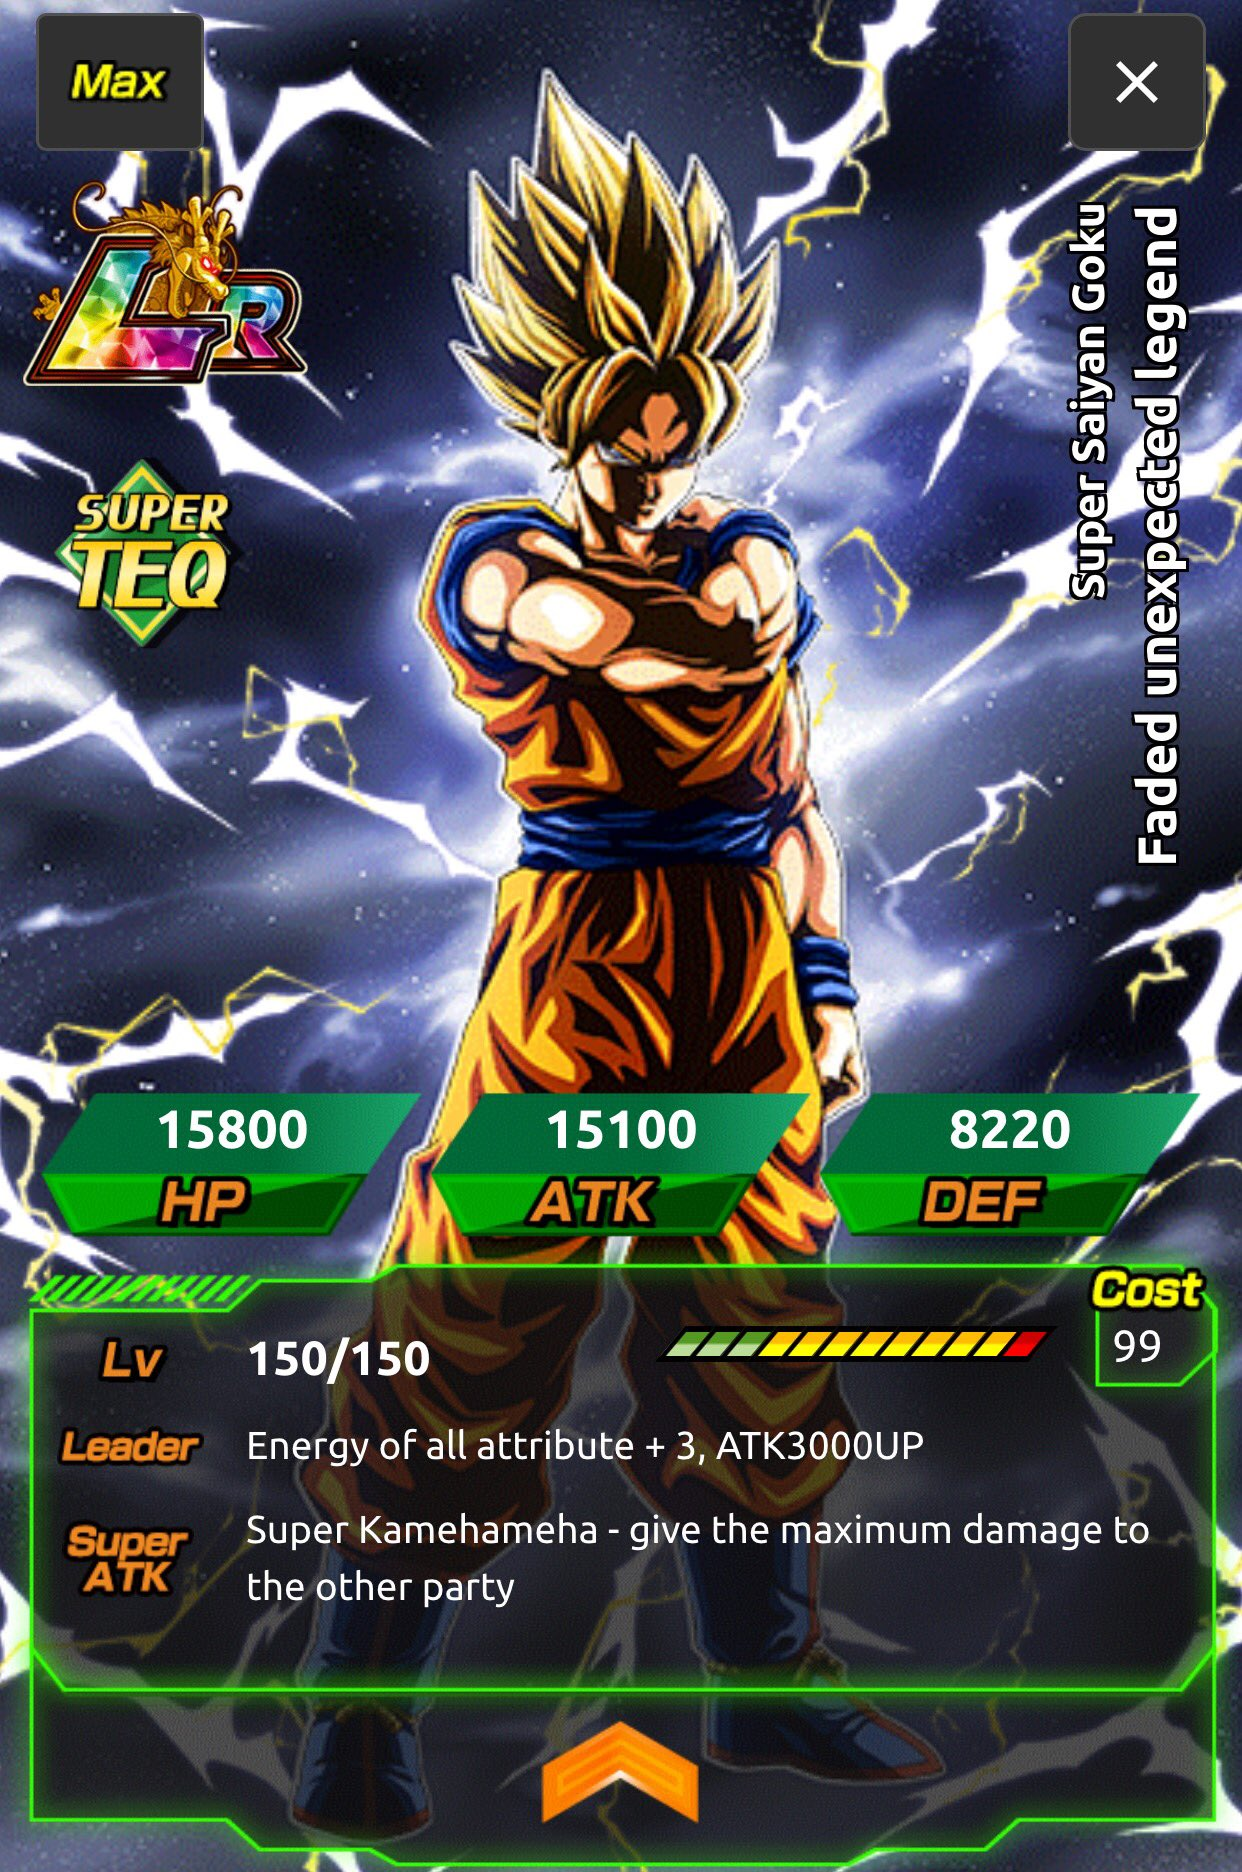 spooky ichigo on twitter global dokkan players should be farming super strike units and dokkan medals to be for the lr cards